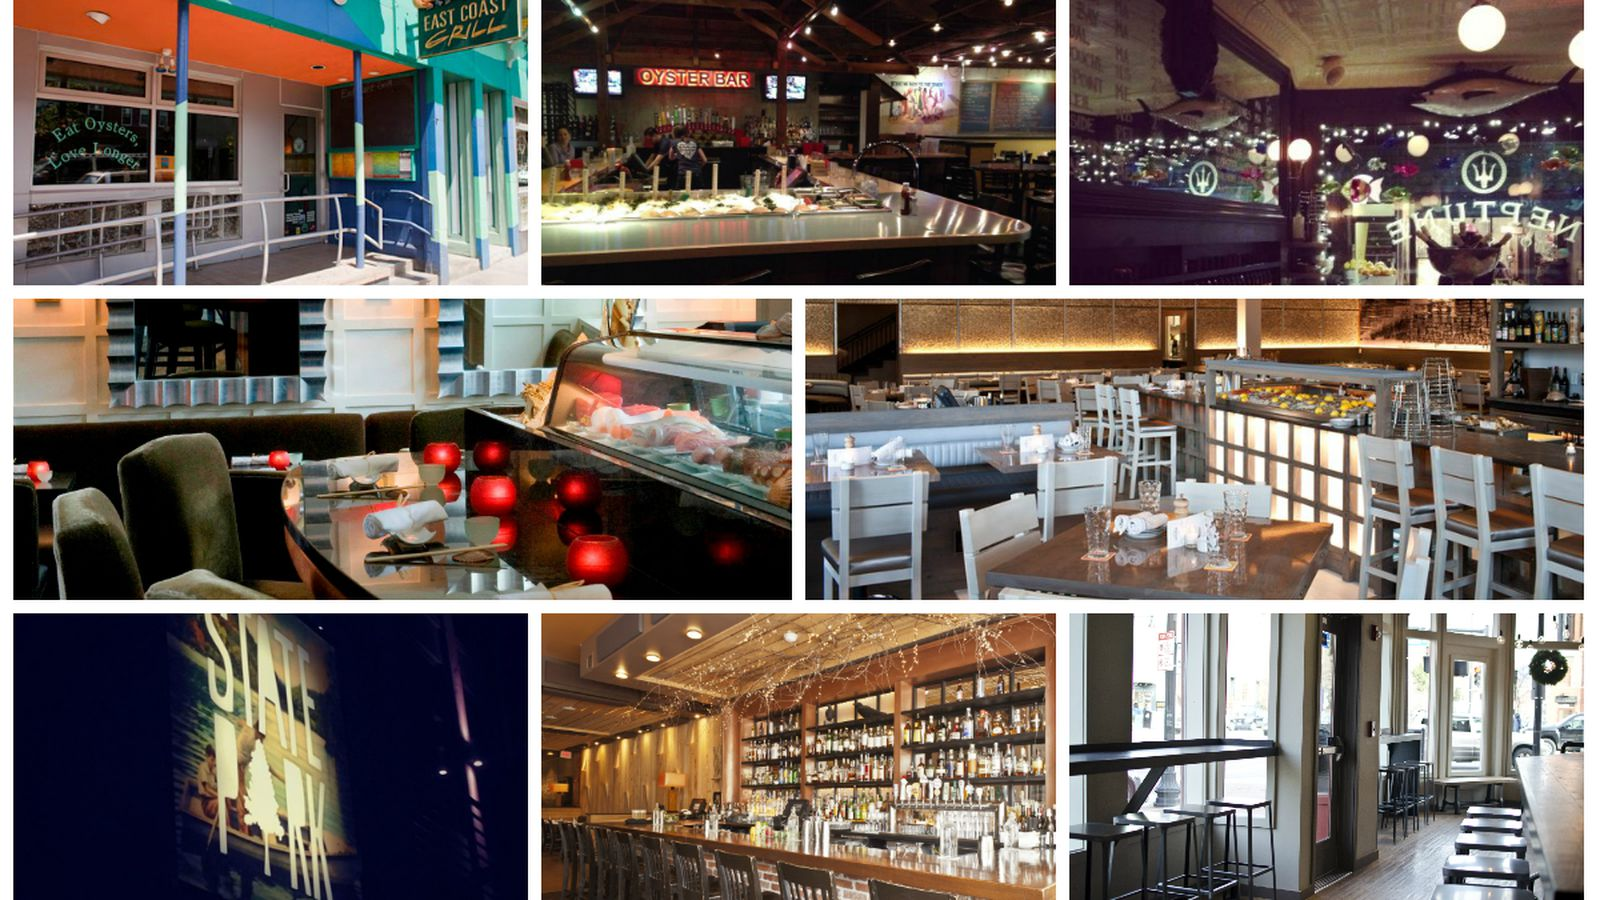 Aw shucks where to get a creative oyster fix eater boston for Open table 99 park